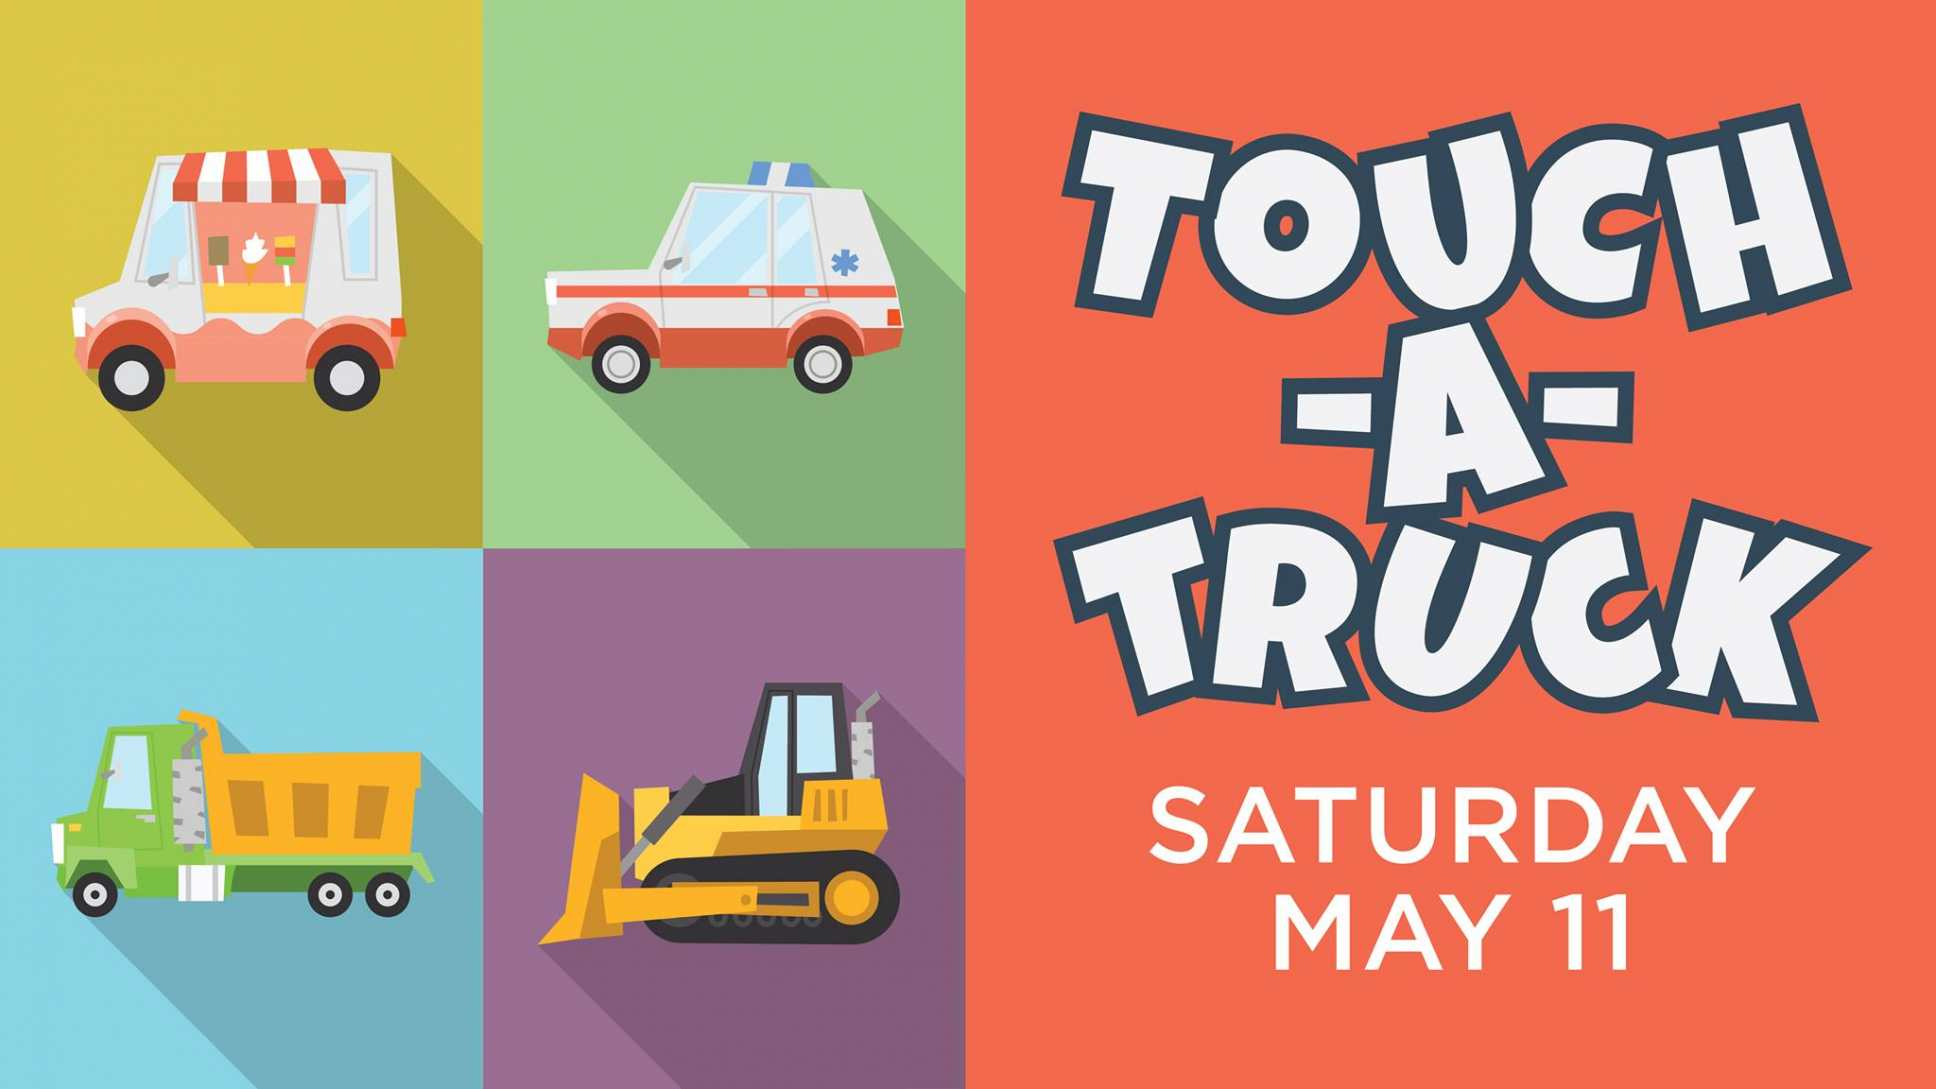 TrailMark is Hosting Touch-A-Truck on May 11